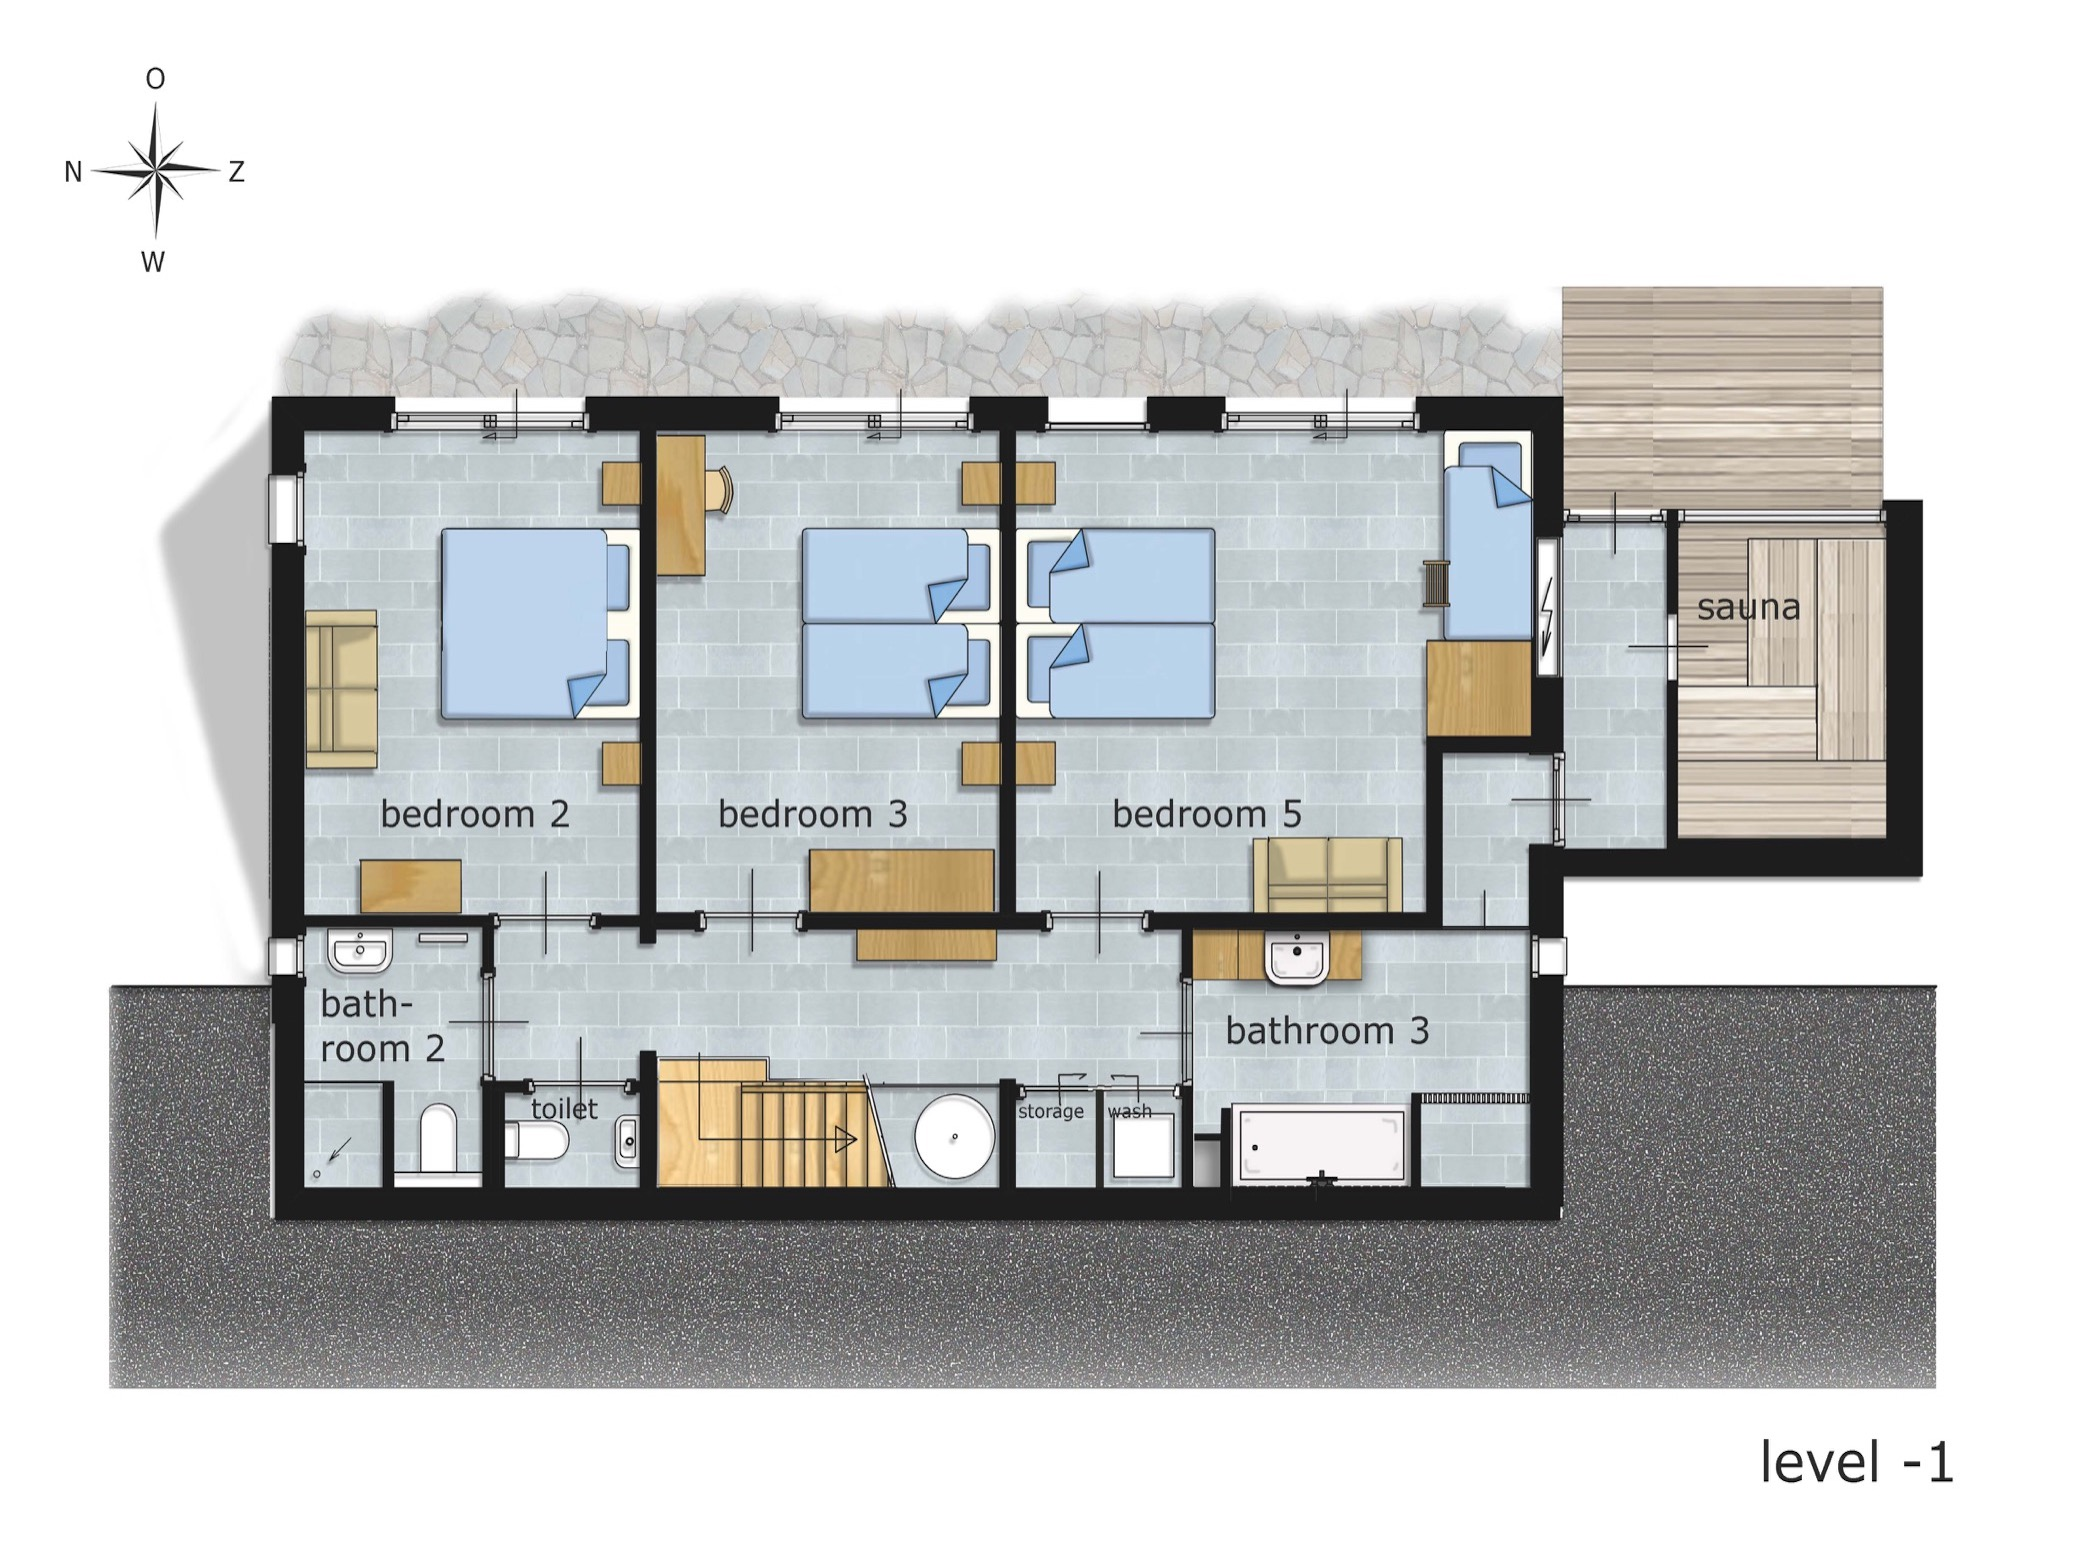 Holiday Home Floor Plan: Level -1 (3 bedrooms, 2 bathrooms, sauns).